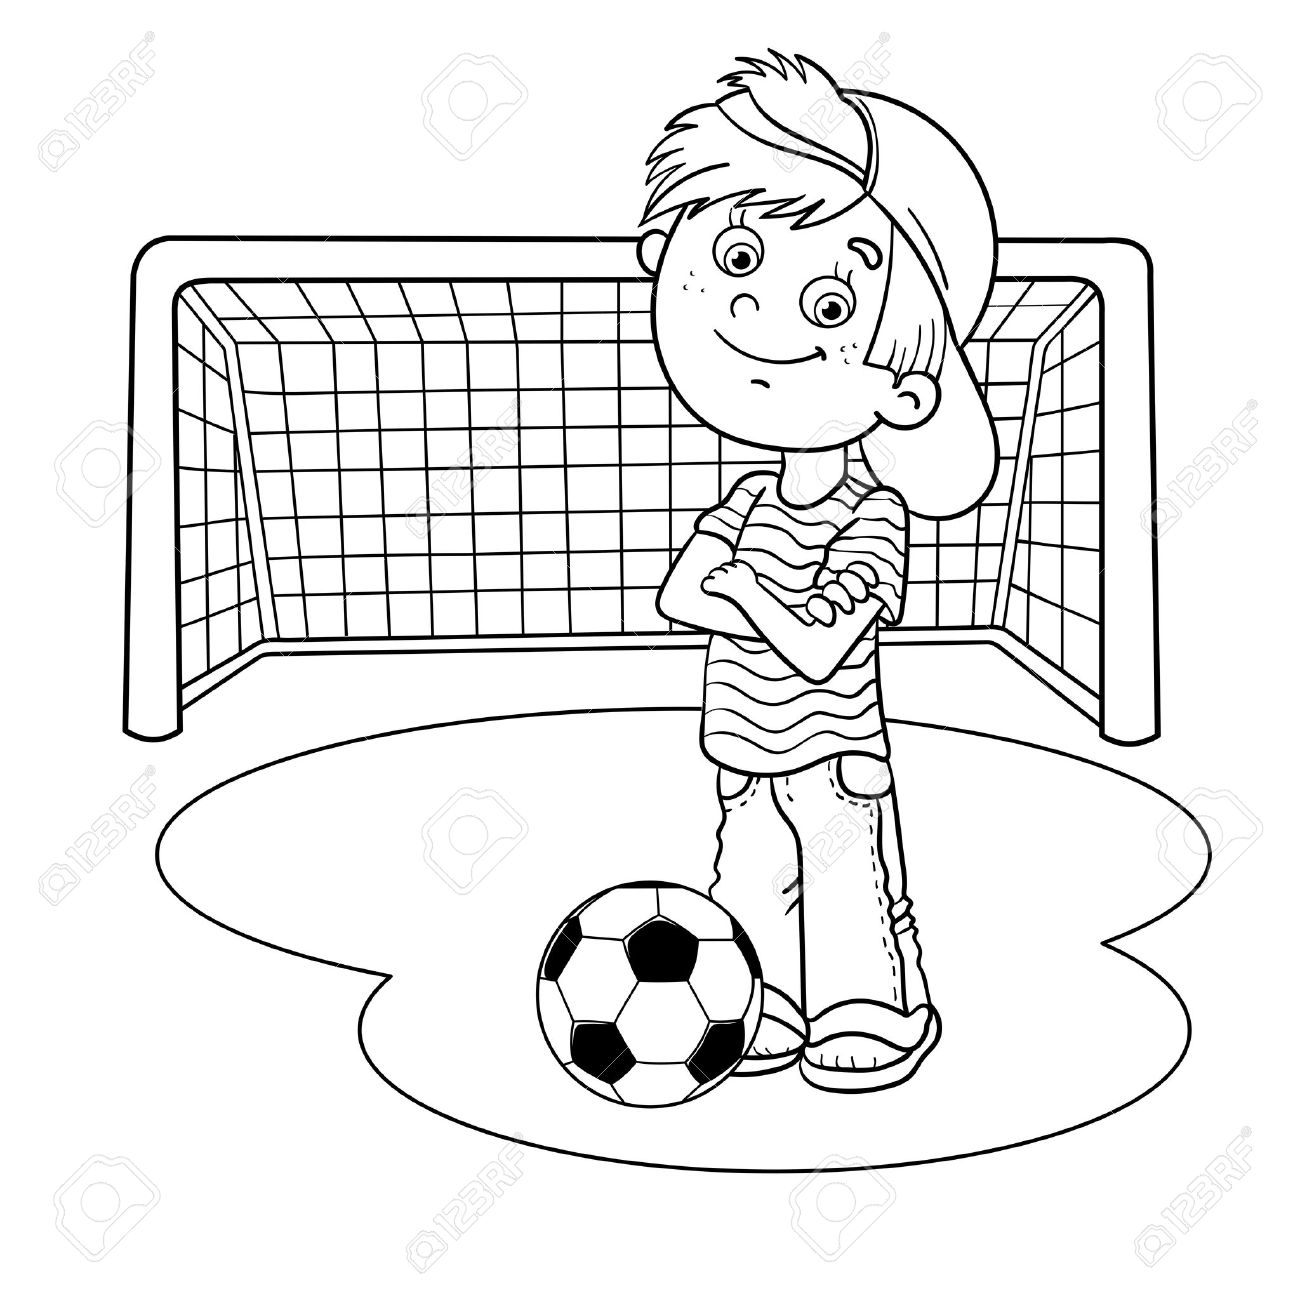 Coloring Page Outline Of A Cartoon Boy With Soccer Ball And Football Goal Stock Vector